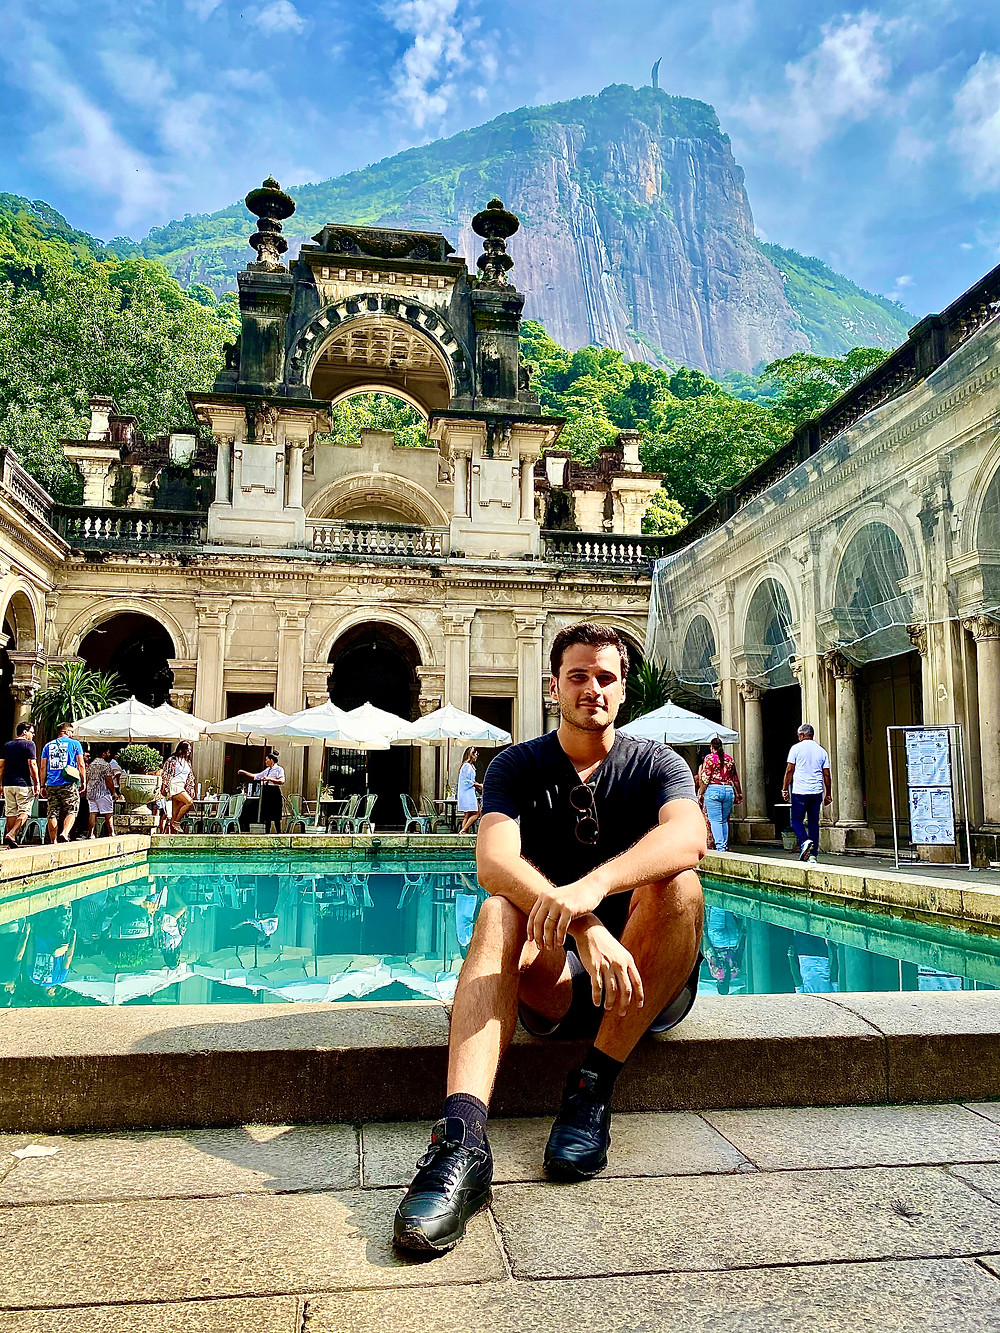 Get to the Parque Lage by 8:30 so you're the first (or within the first few) to enter the mansion and get your famous shot of the pool and the Corcovado without other roaming tourists.